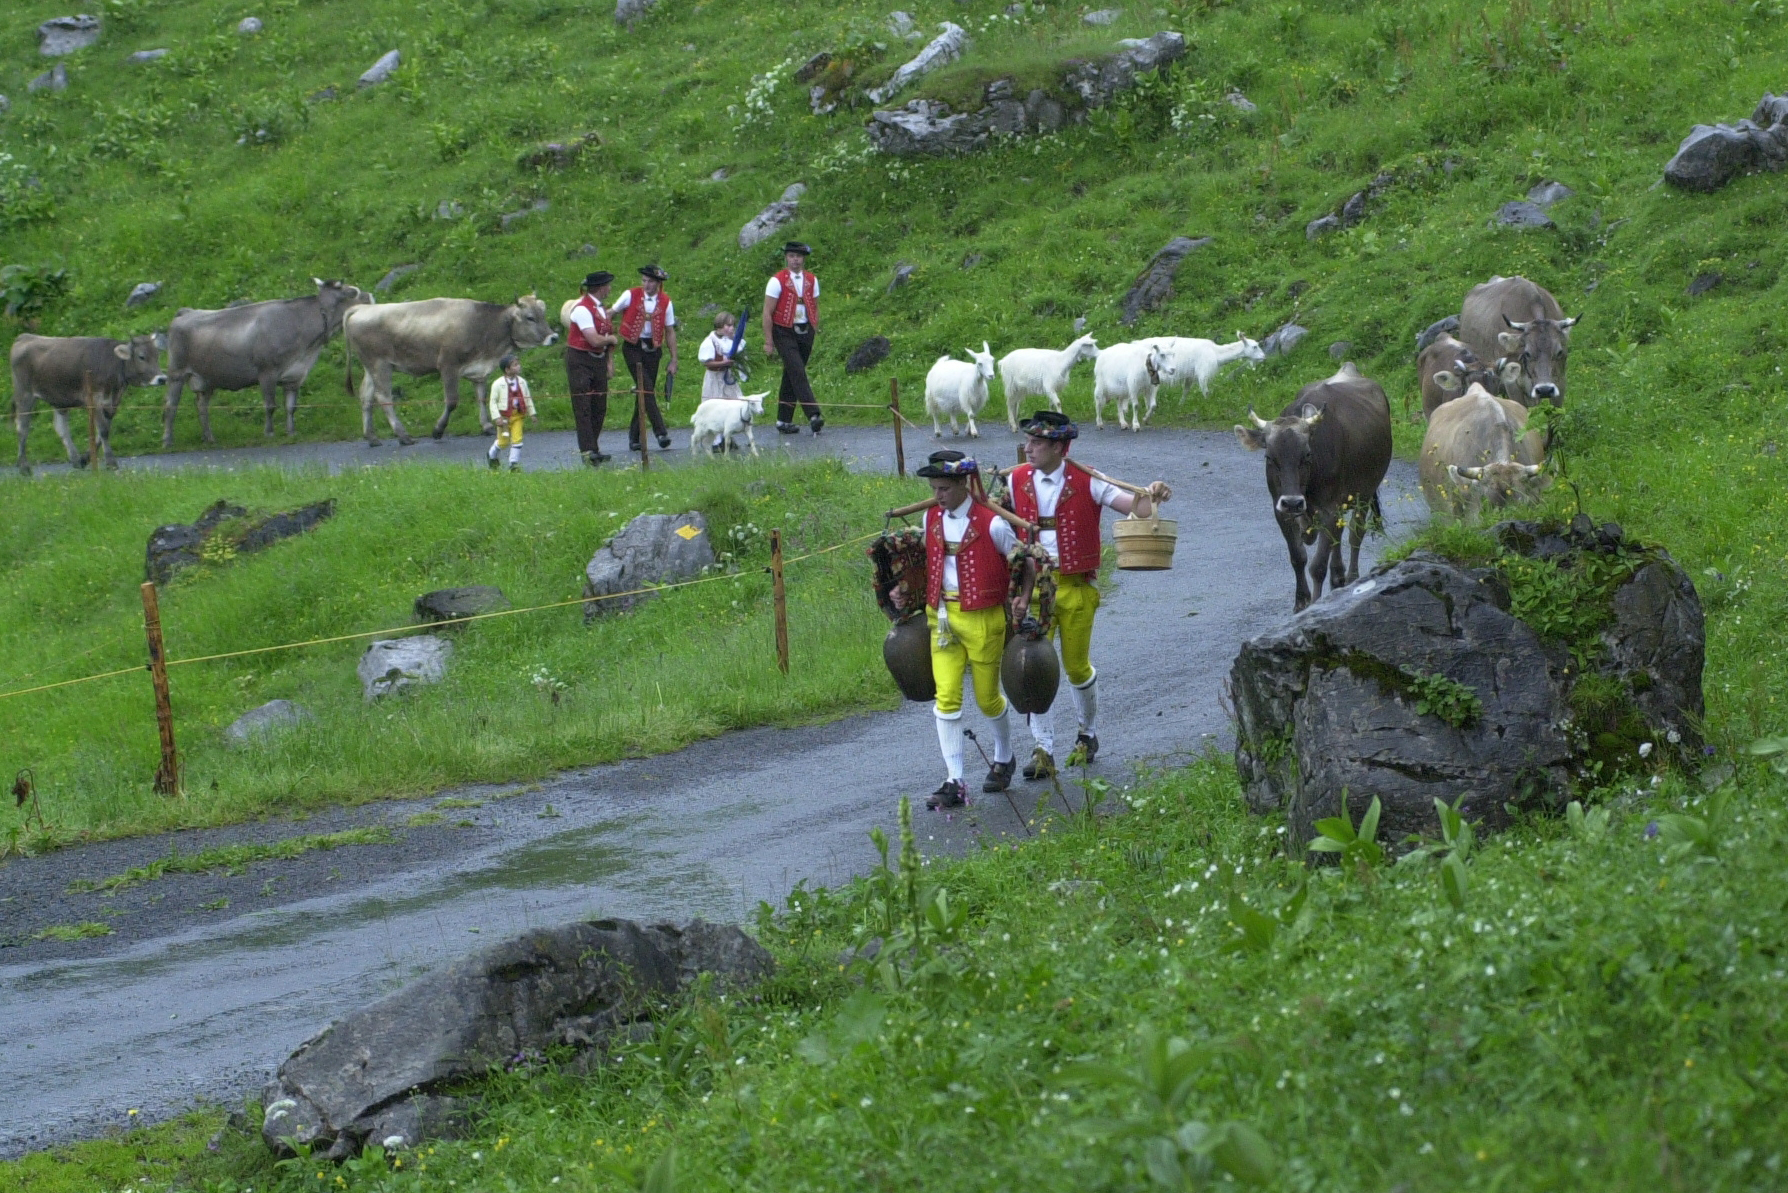 Schwägalp ascent: As soon as the path gets steep, the herdsmen take the large bells from the cows and carry them on sticks across their shoulders, ringing them in time © Hans Hürlemann, Urnäsch, 2001